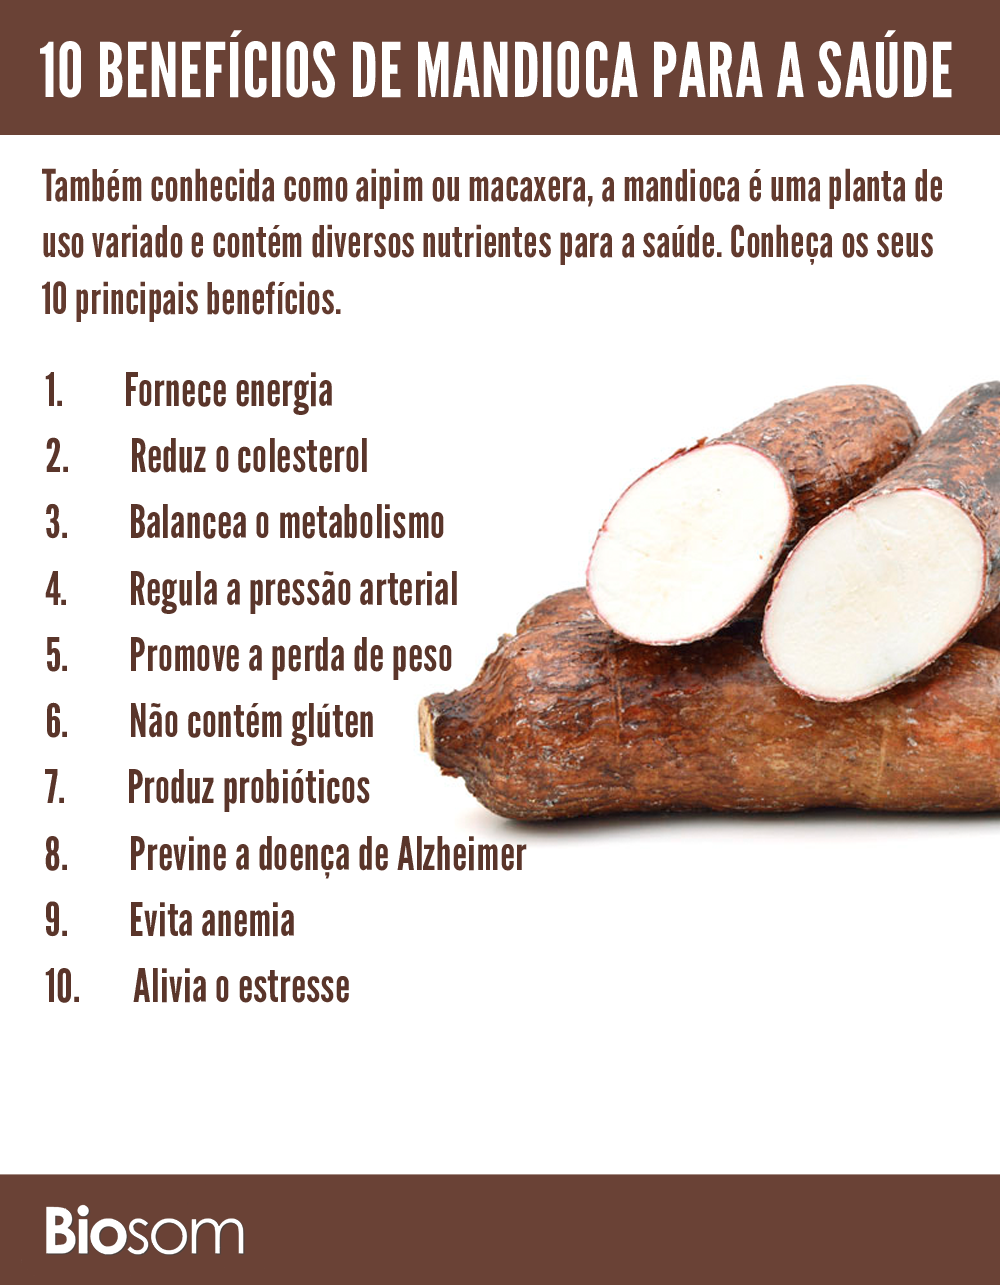 Beneficios da Mandioca 1